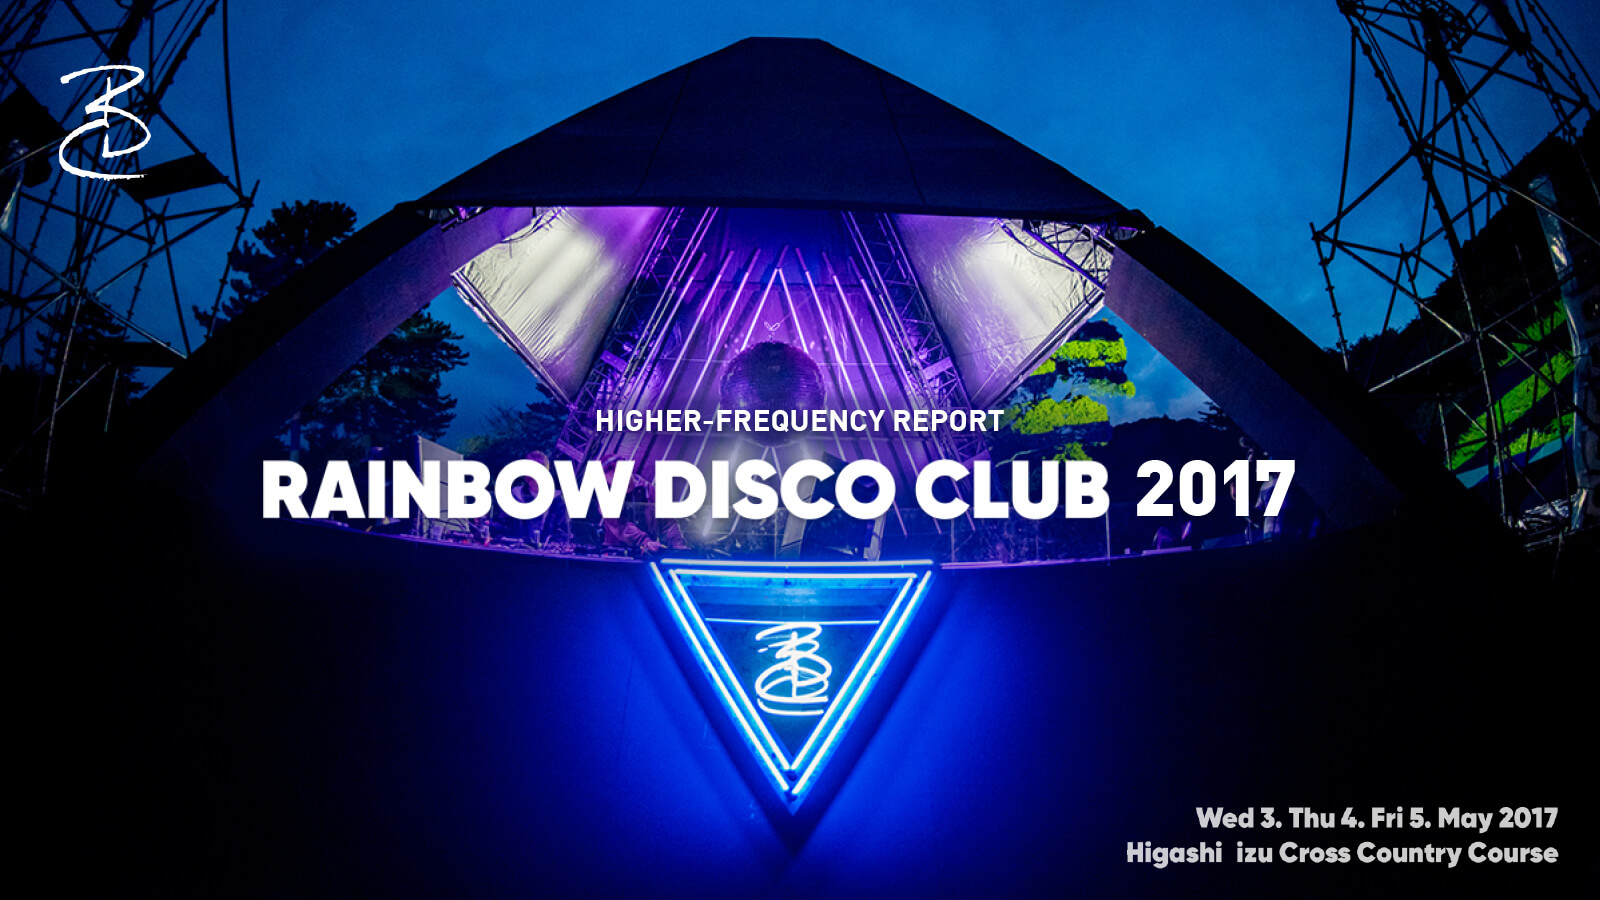 Rainbow Disco Club 2017